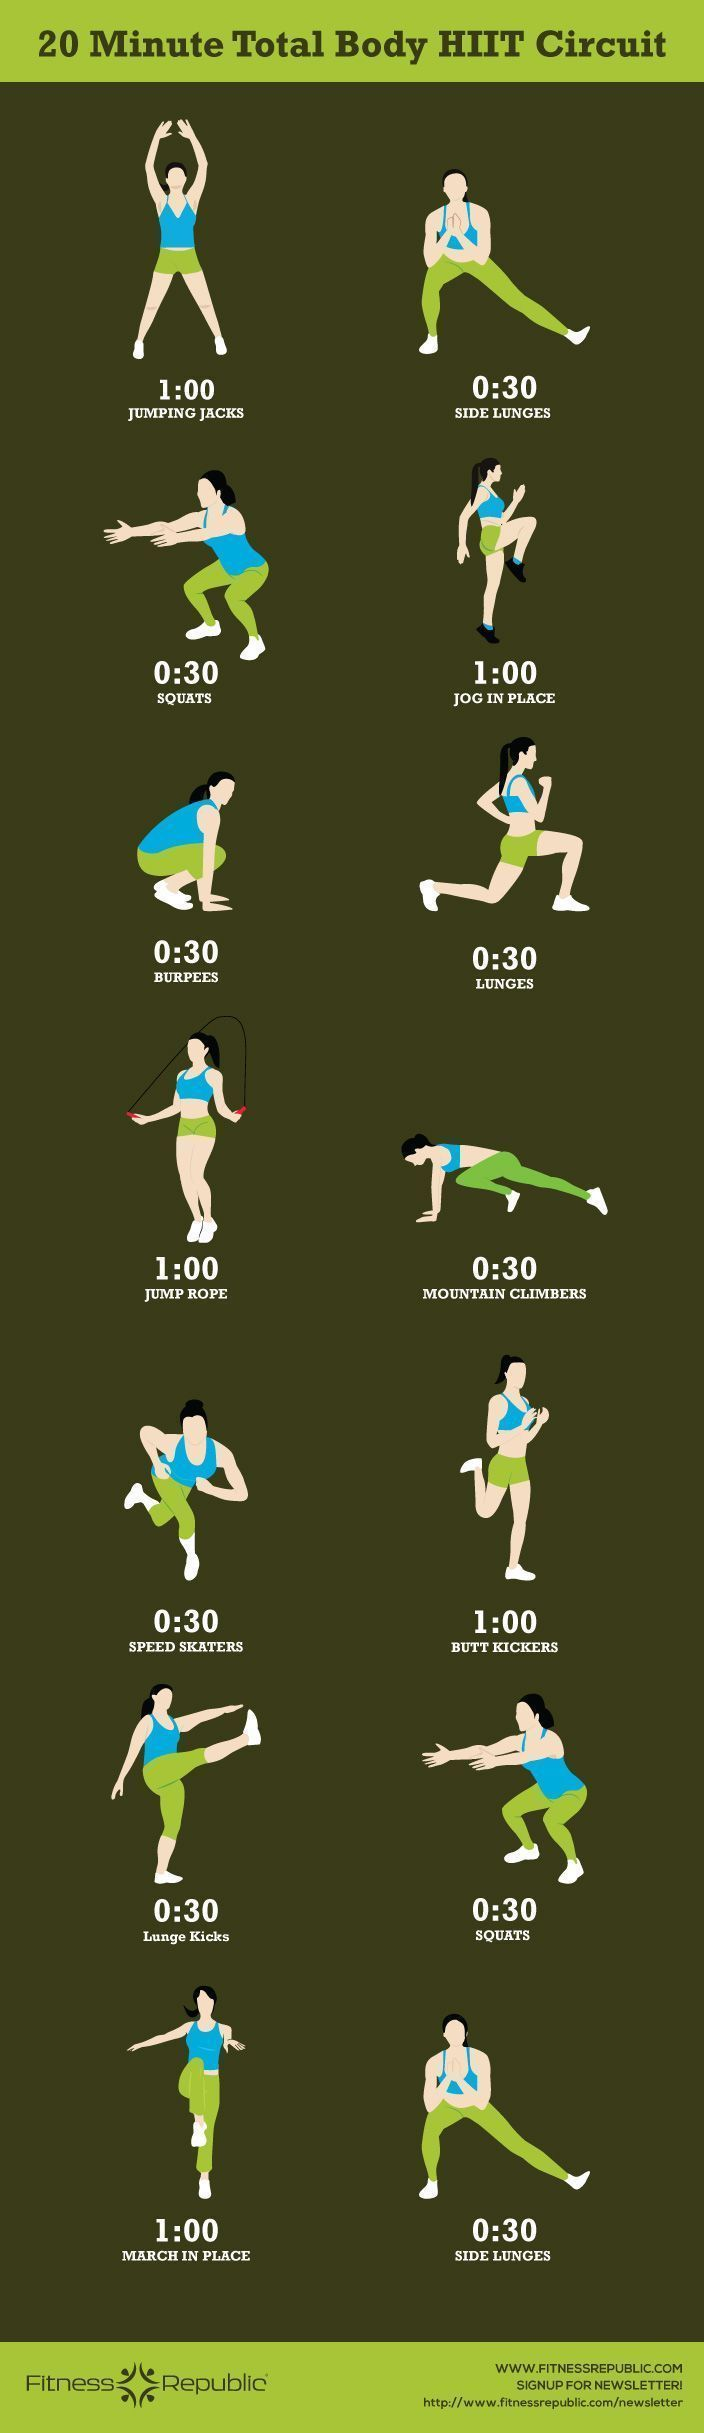 Circuito Hiit : Minute total body hiit circuit find more relevant stuff